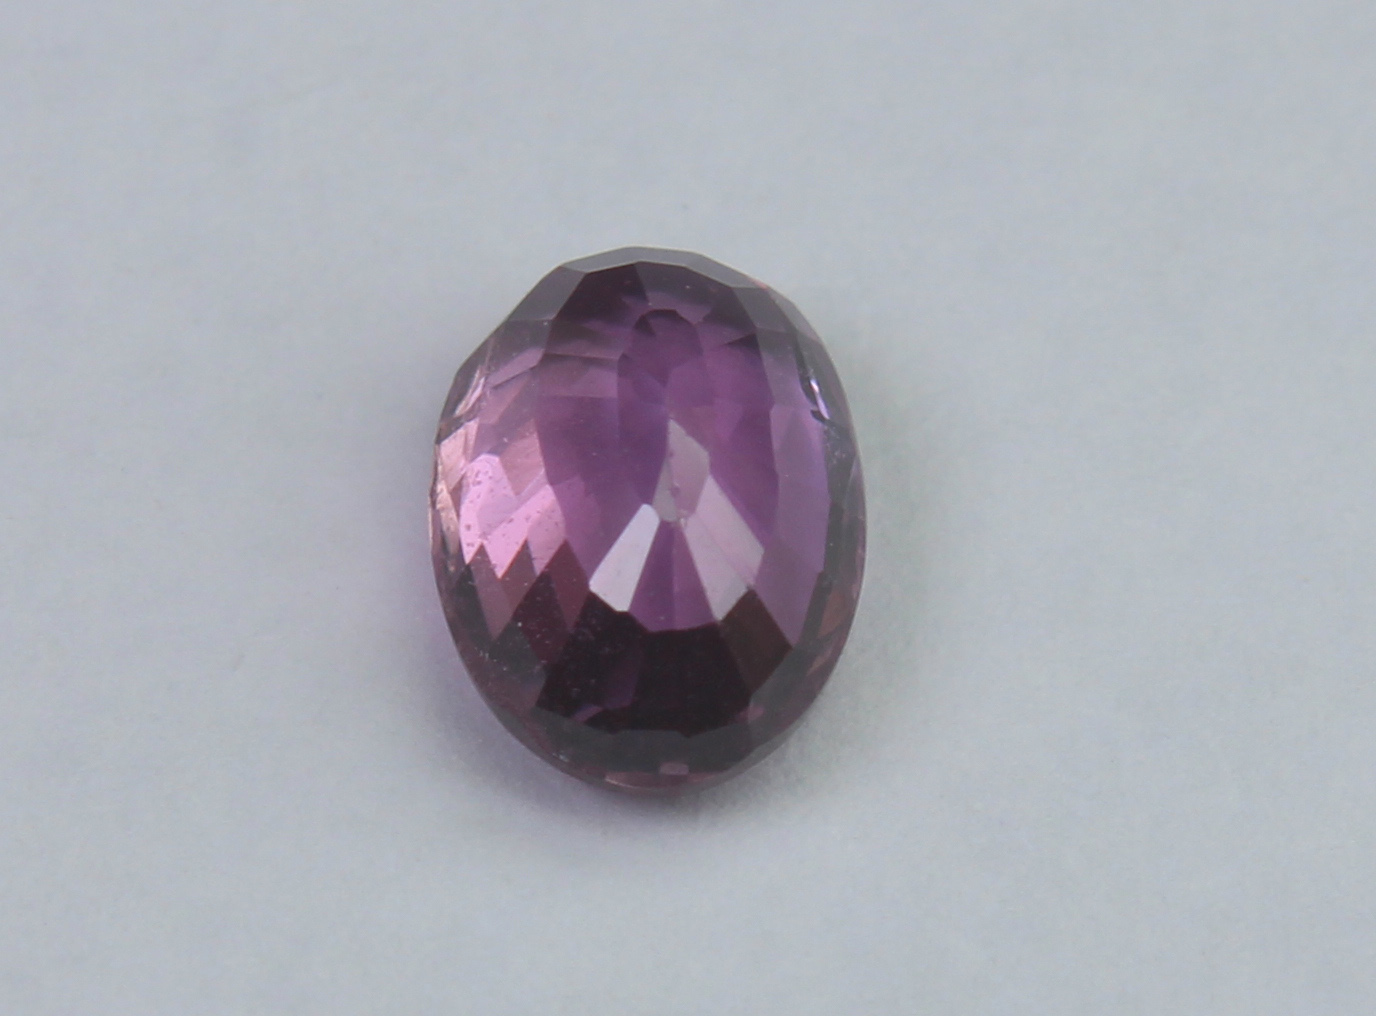 Pink Sapphire, 1.56 Ct - unheated - Image 4 of 5